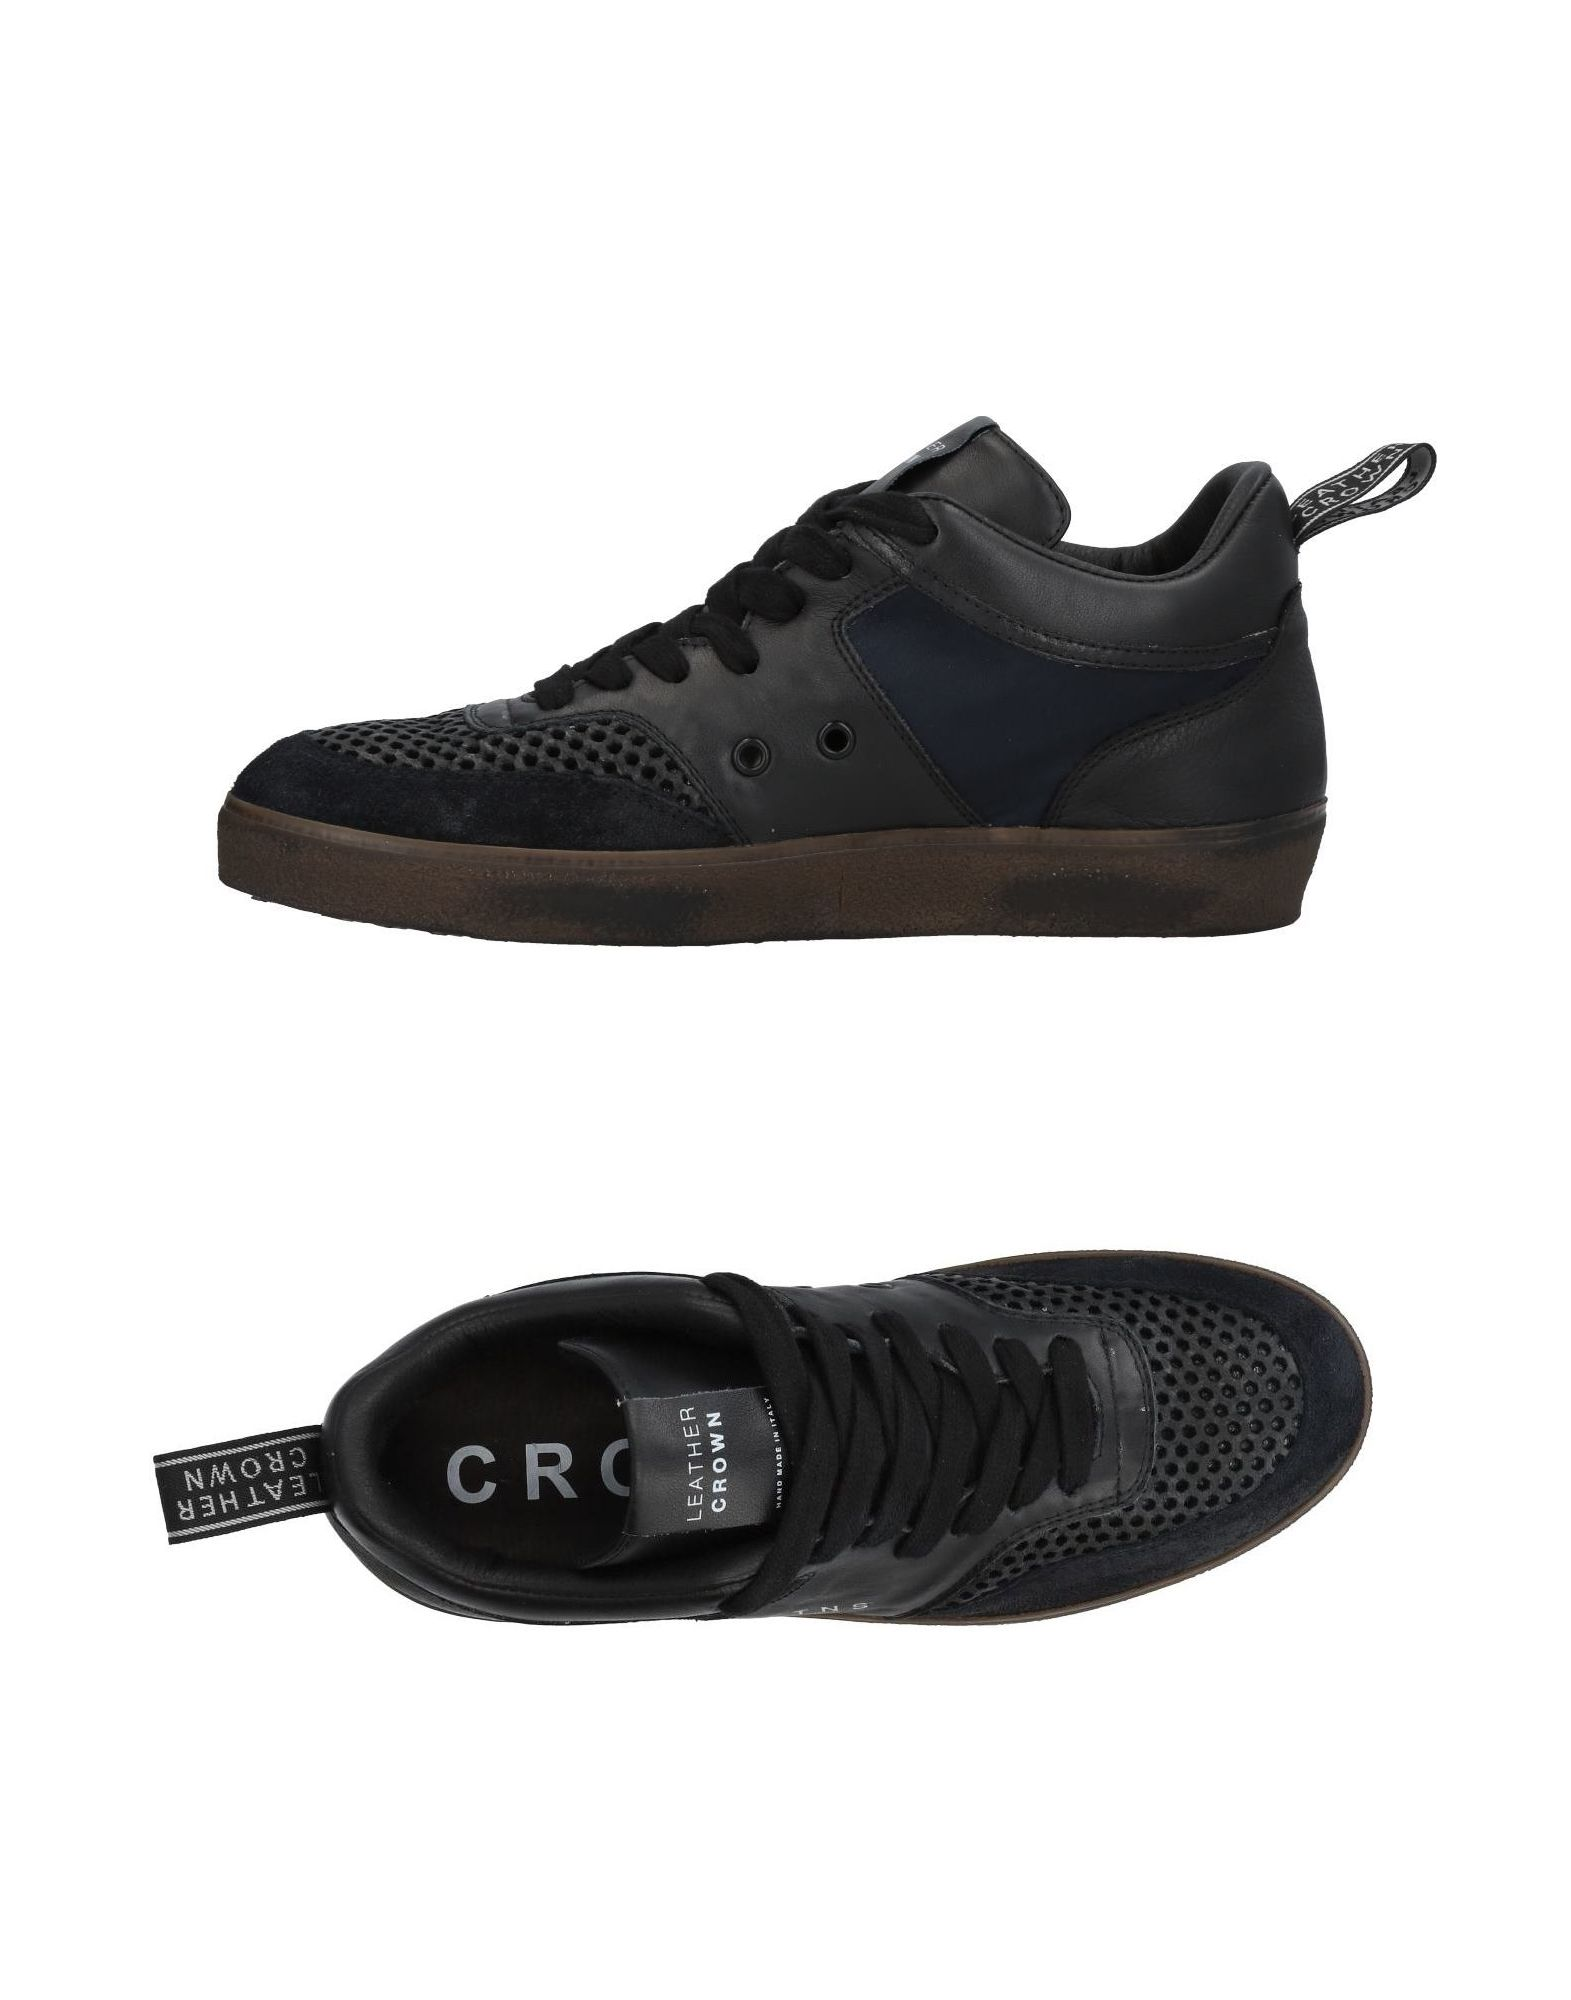 Leather on Crown Sneakers - Men Leather Crown Sneakers online on Leather  Canada - 11453728KW 37a91b